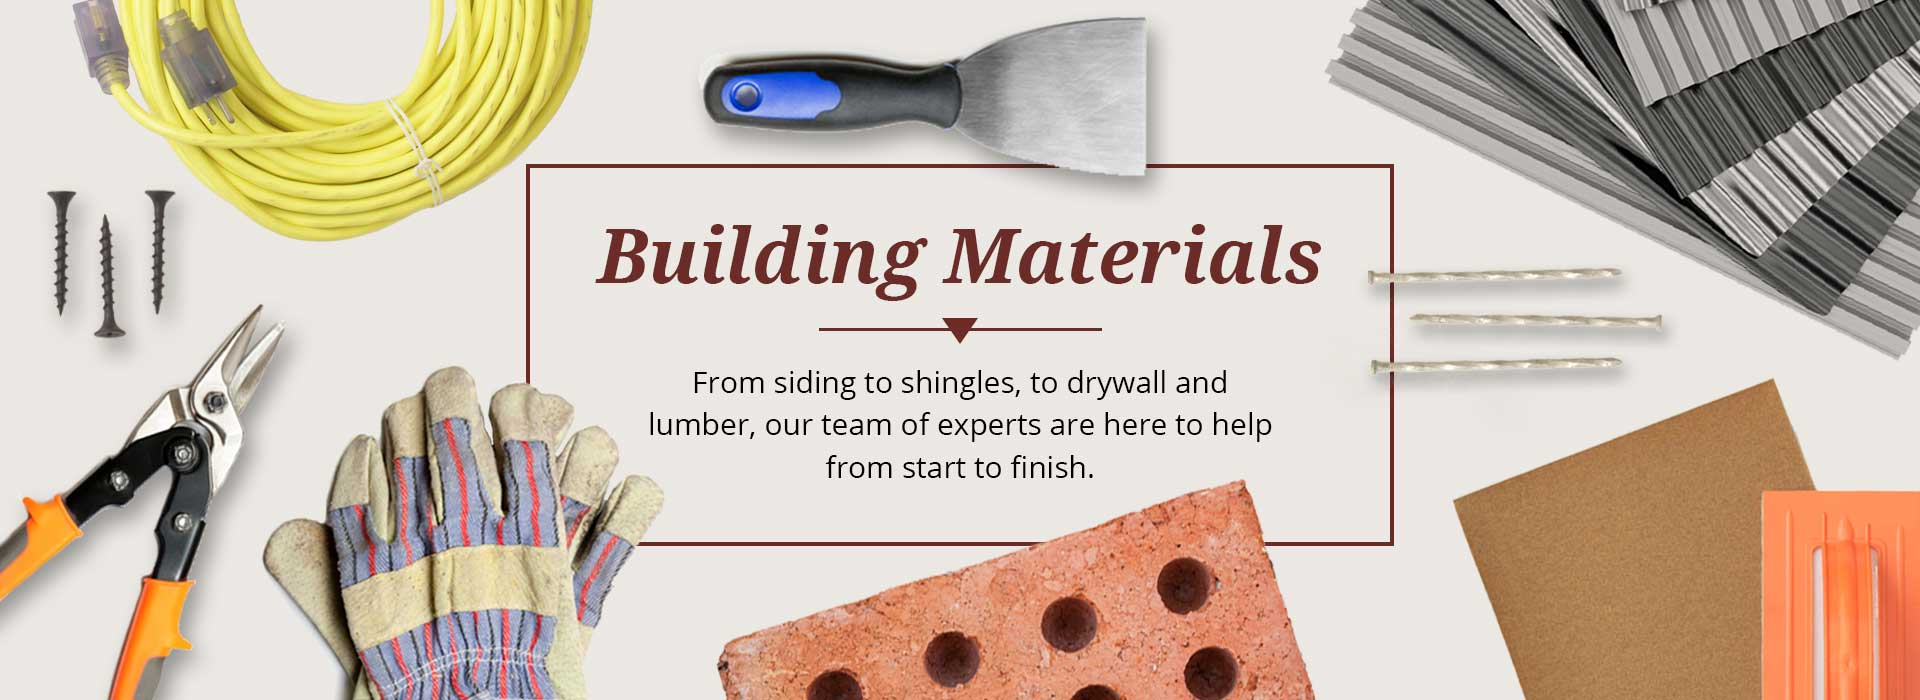 Building materials yantzi home design smart for Materials needed to build a house